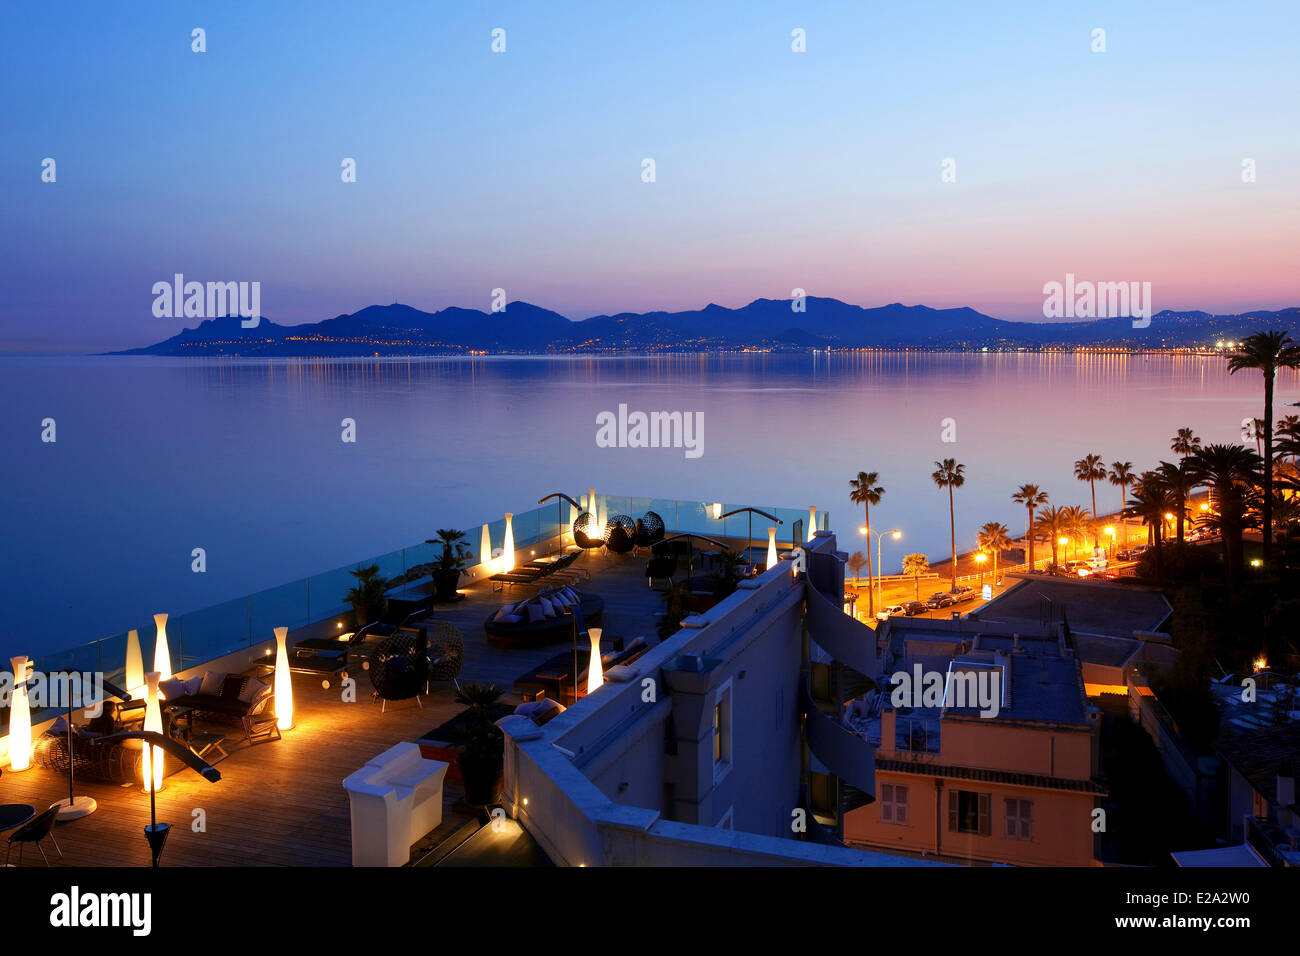 France, Alpes Maritimes, Cannes, Hotel Radisson Blu, rooftop terrace, in the background on the Esterel Mountains - Stock Image